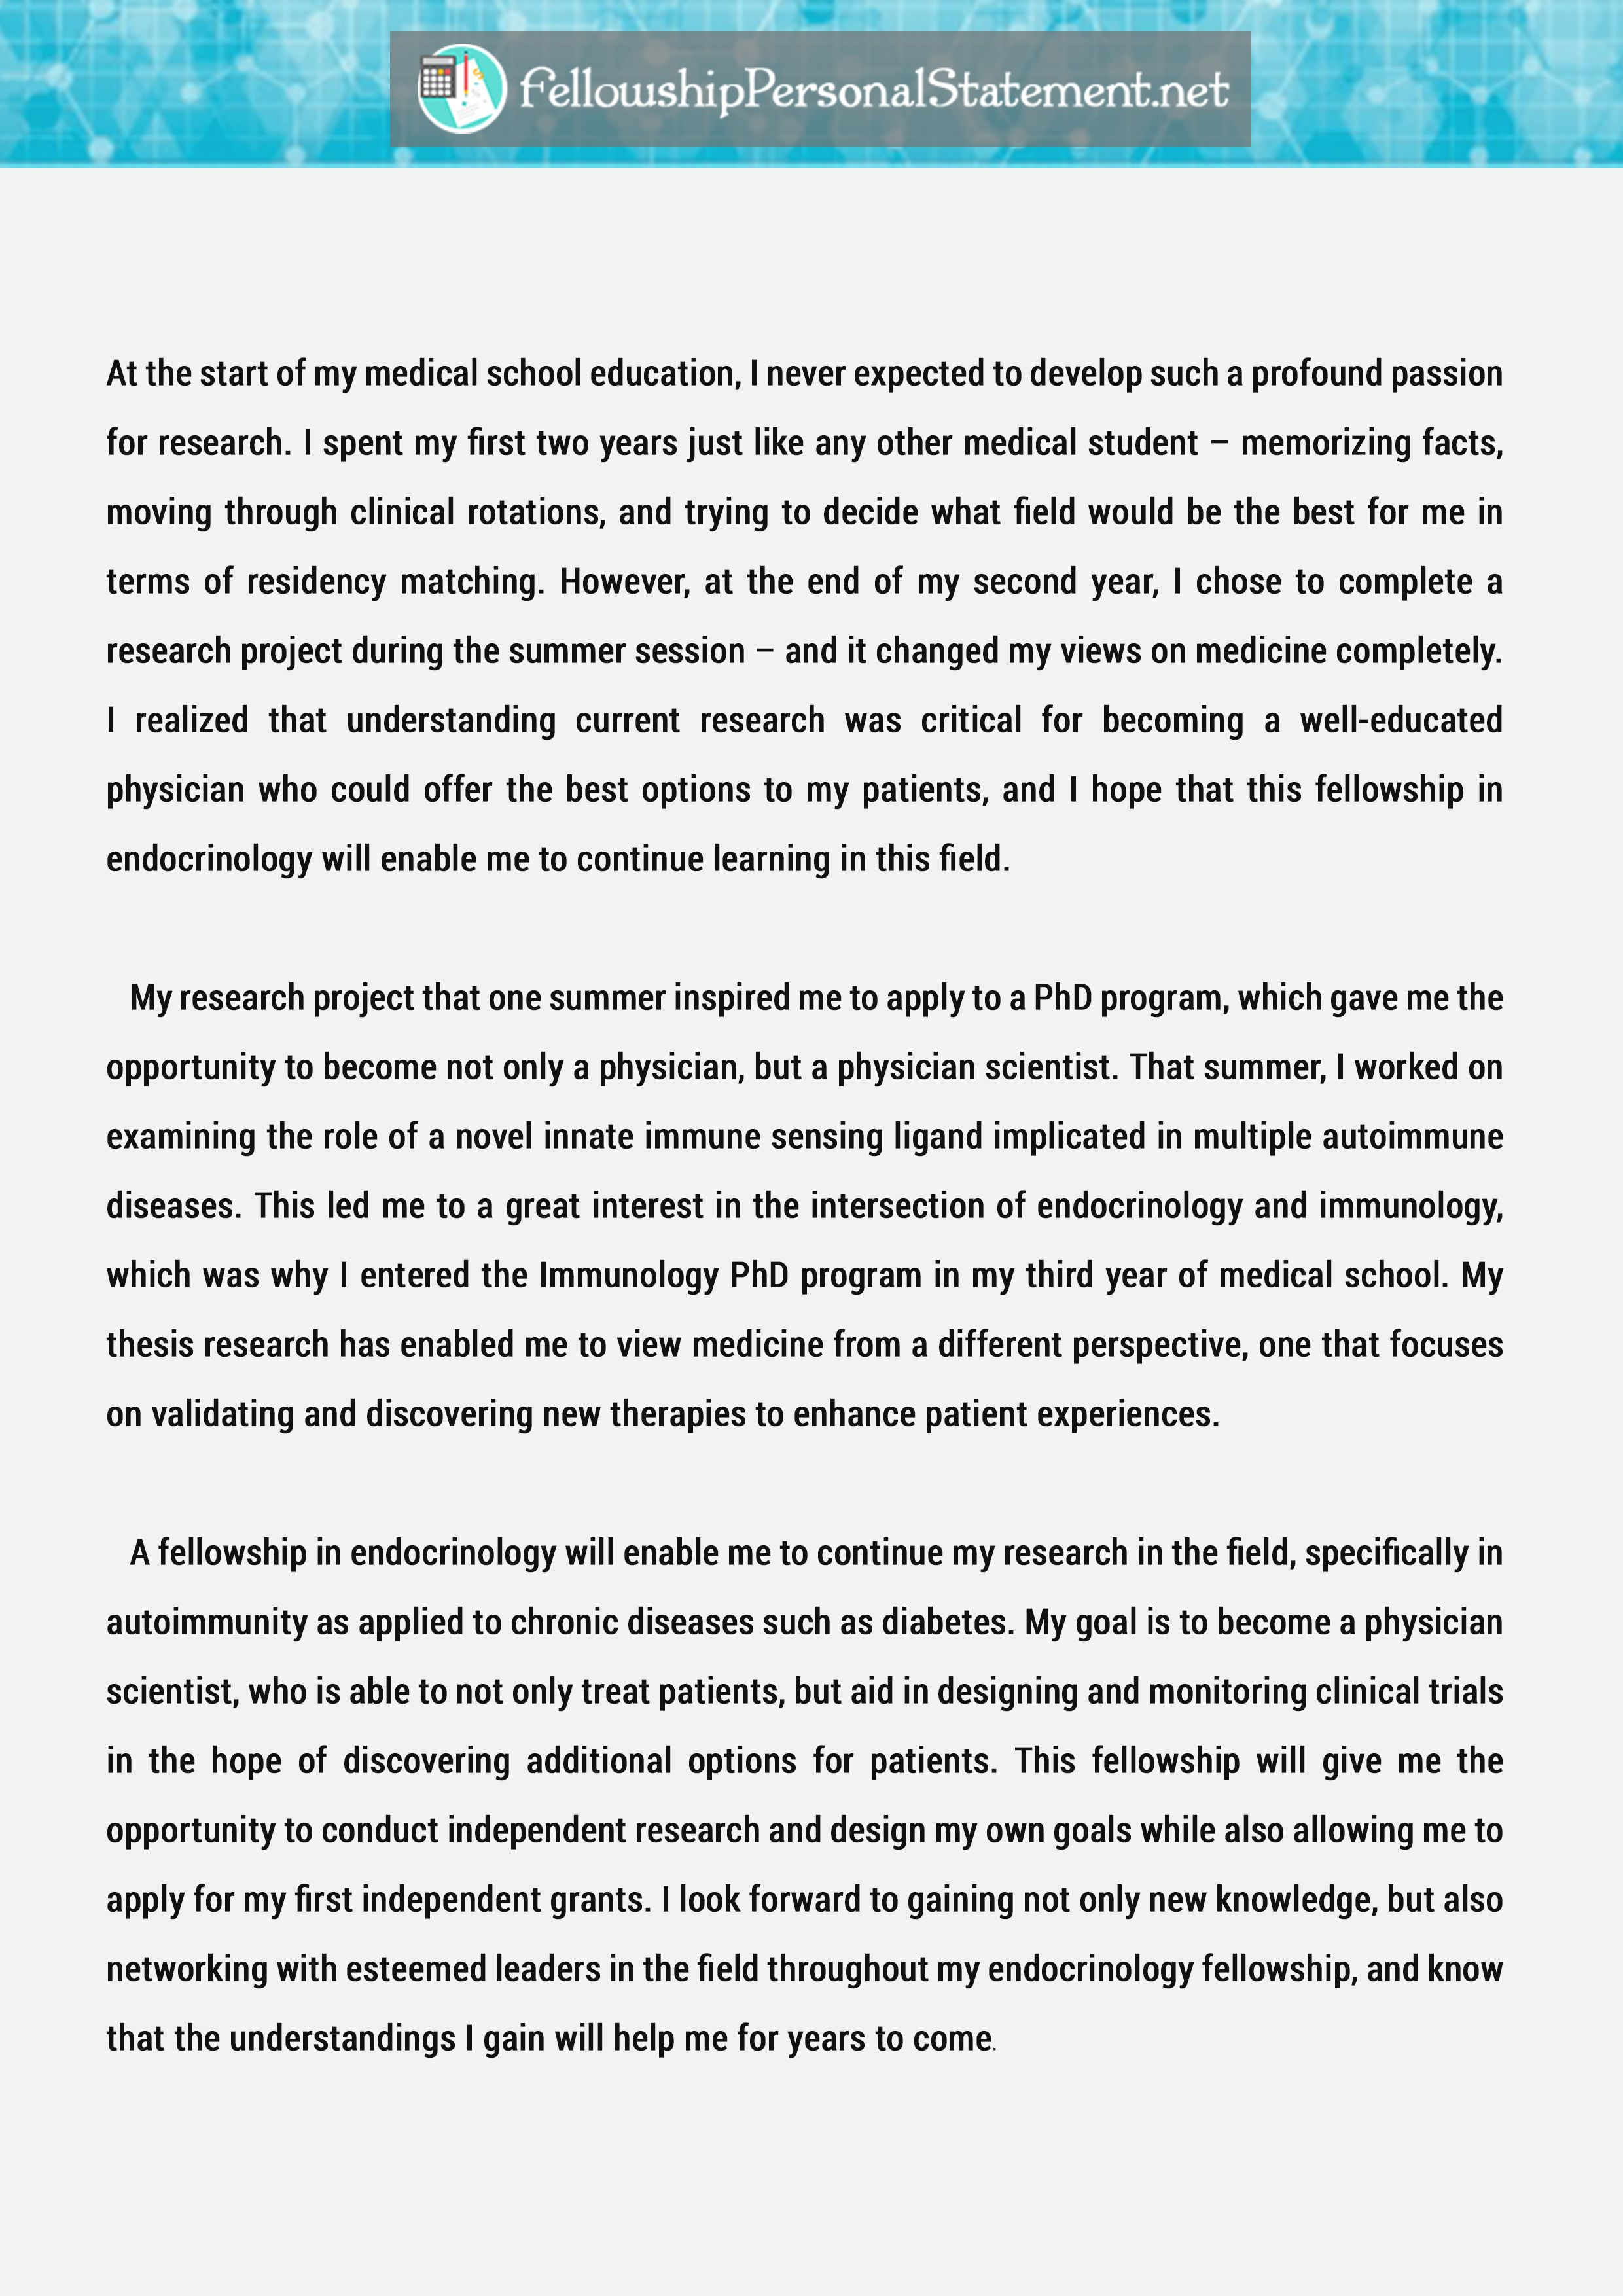 Amazing Sample Fellowship Personal Statement That Will